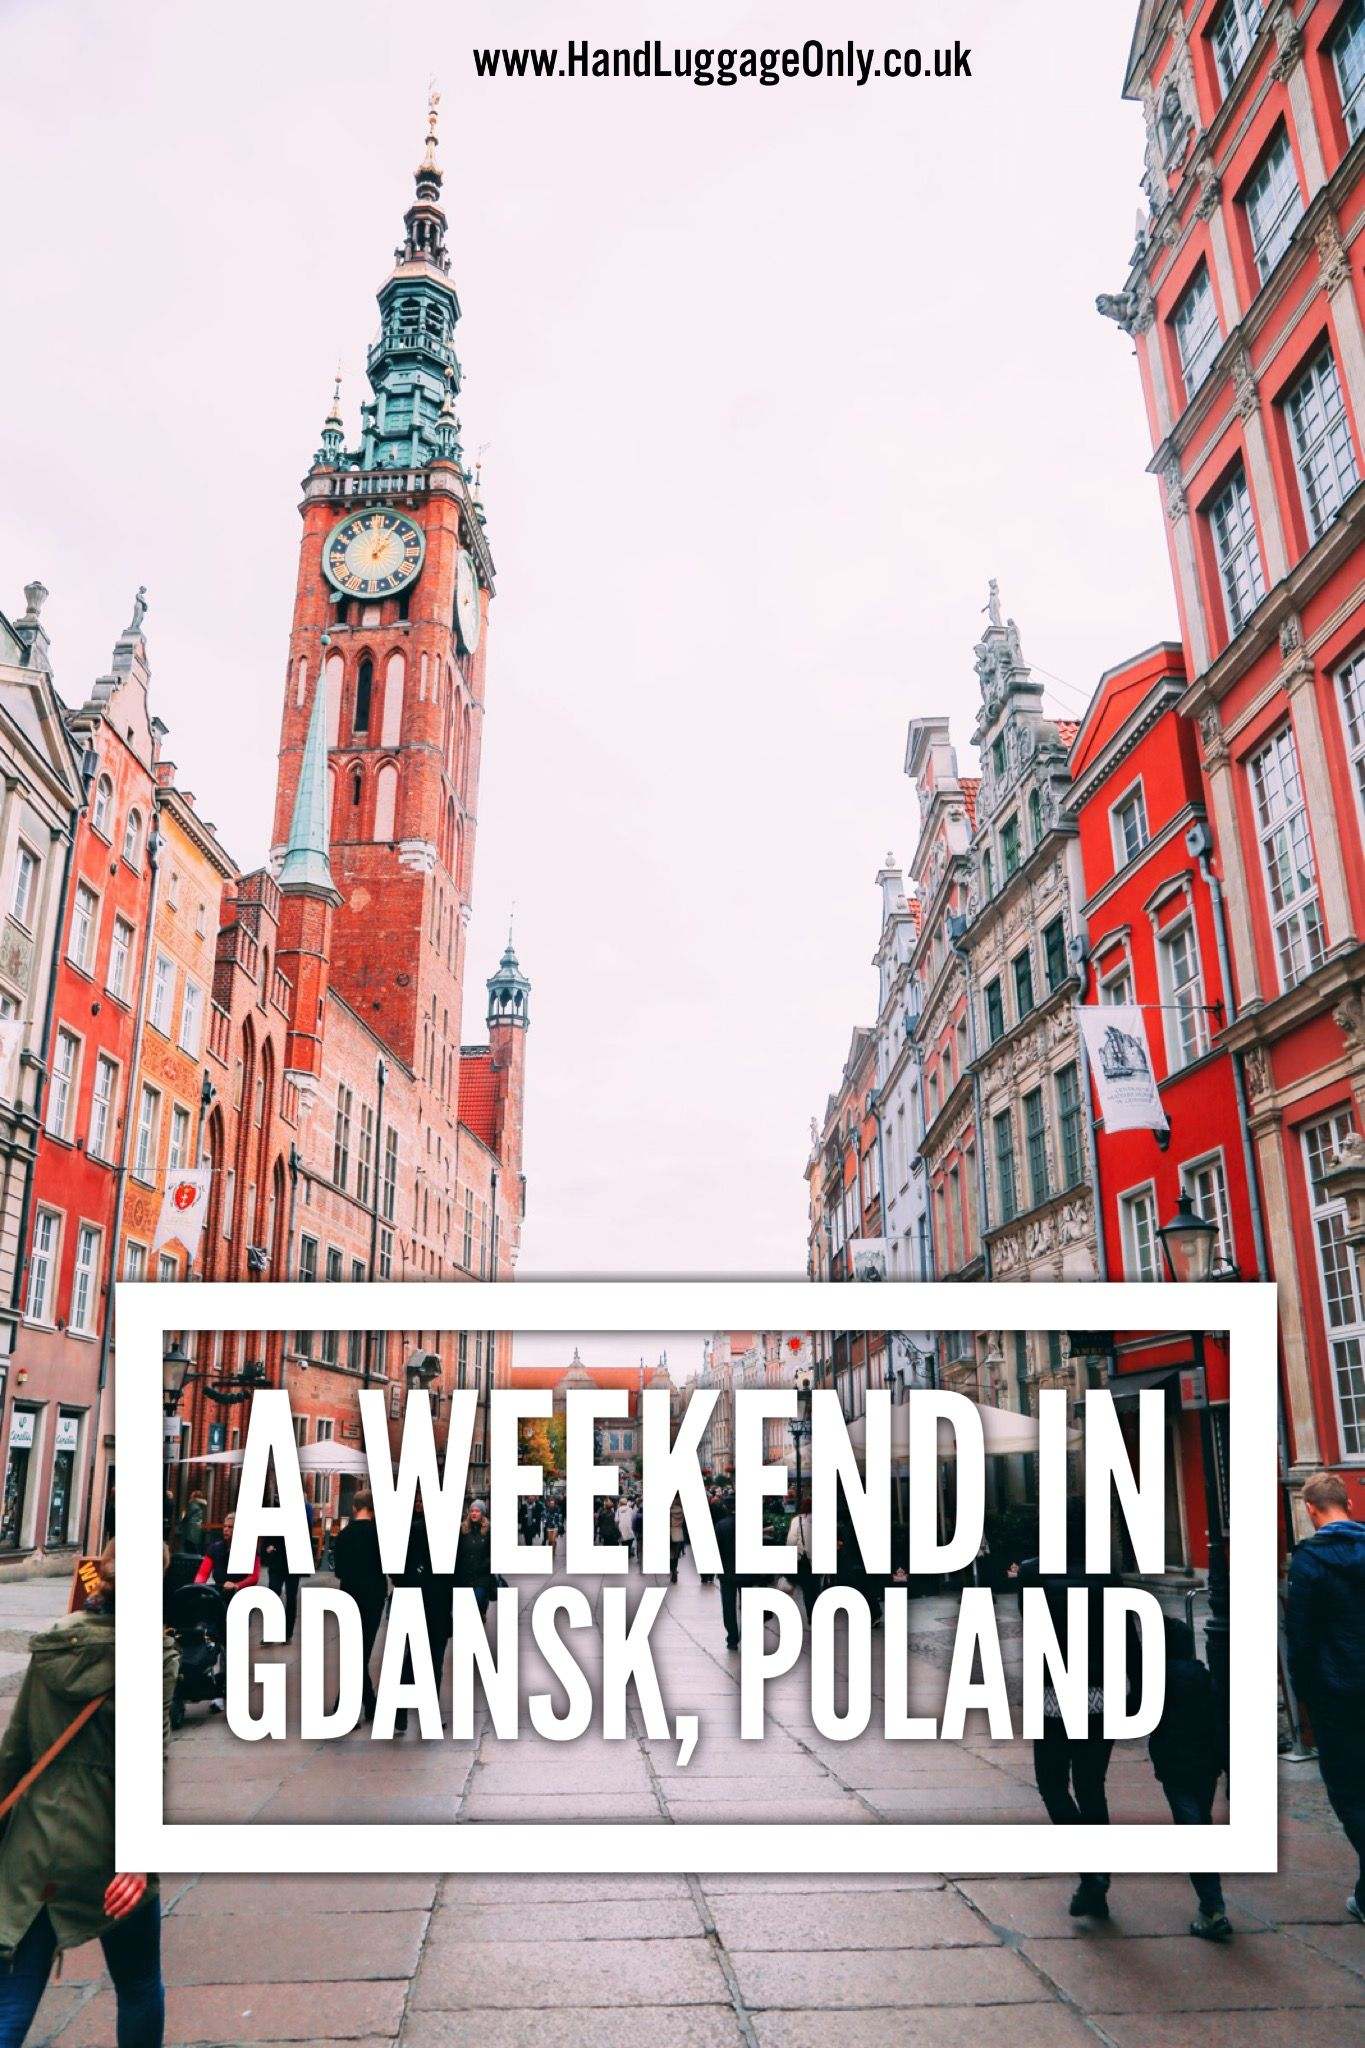 Gdansk, Poland | An old Baltic town that was the home to kings and queens, Gdansk also features Malbork, Europe's largest Gothic castle. Cruise with Royal Caribbean to Poland and check out the Great Armory, a classic example of Renaissance architecture.